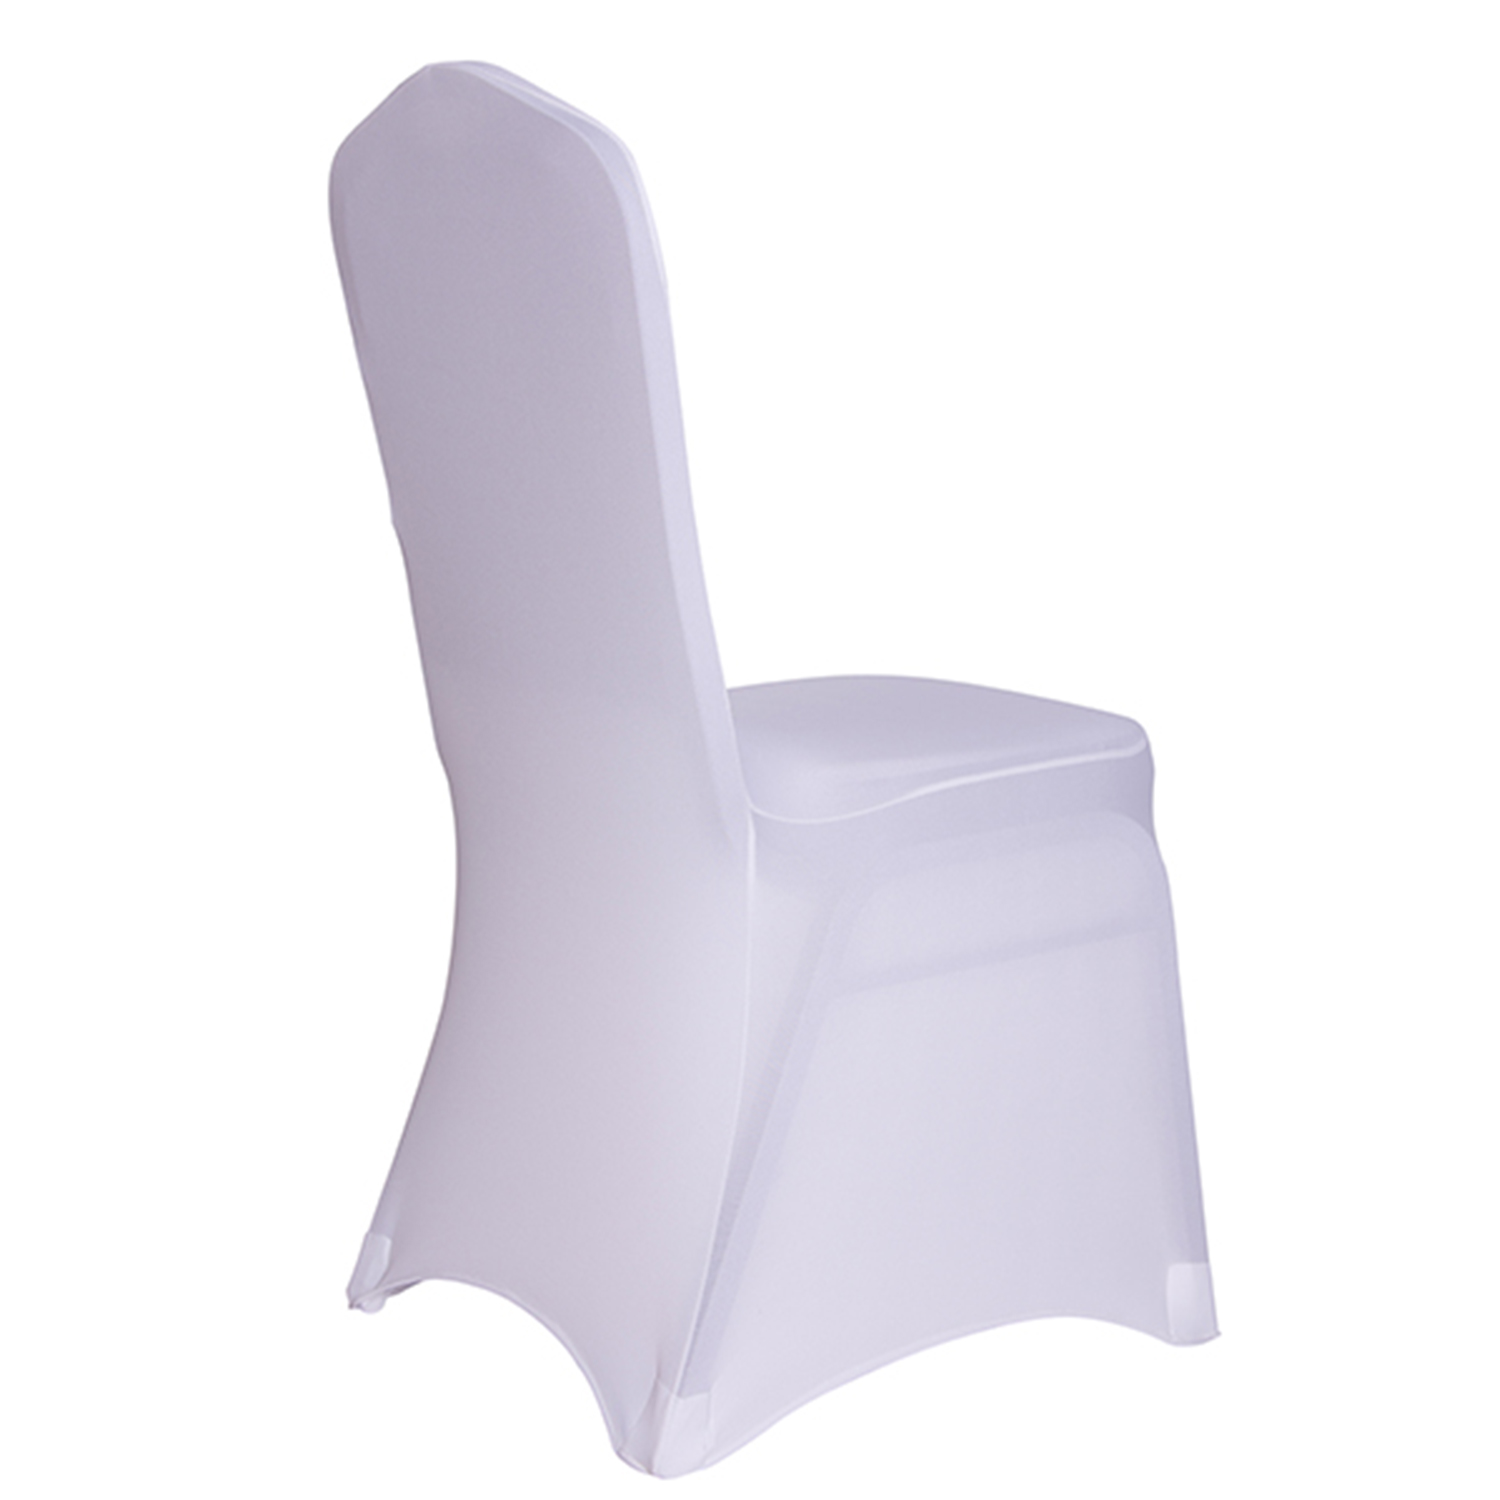 White Spandex Chair Covers White Lycra Chair Covers